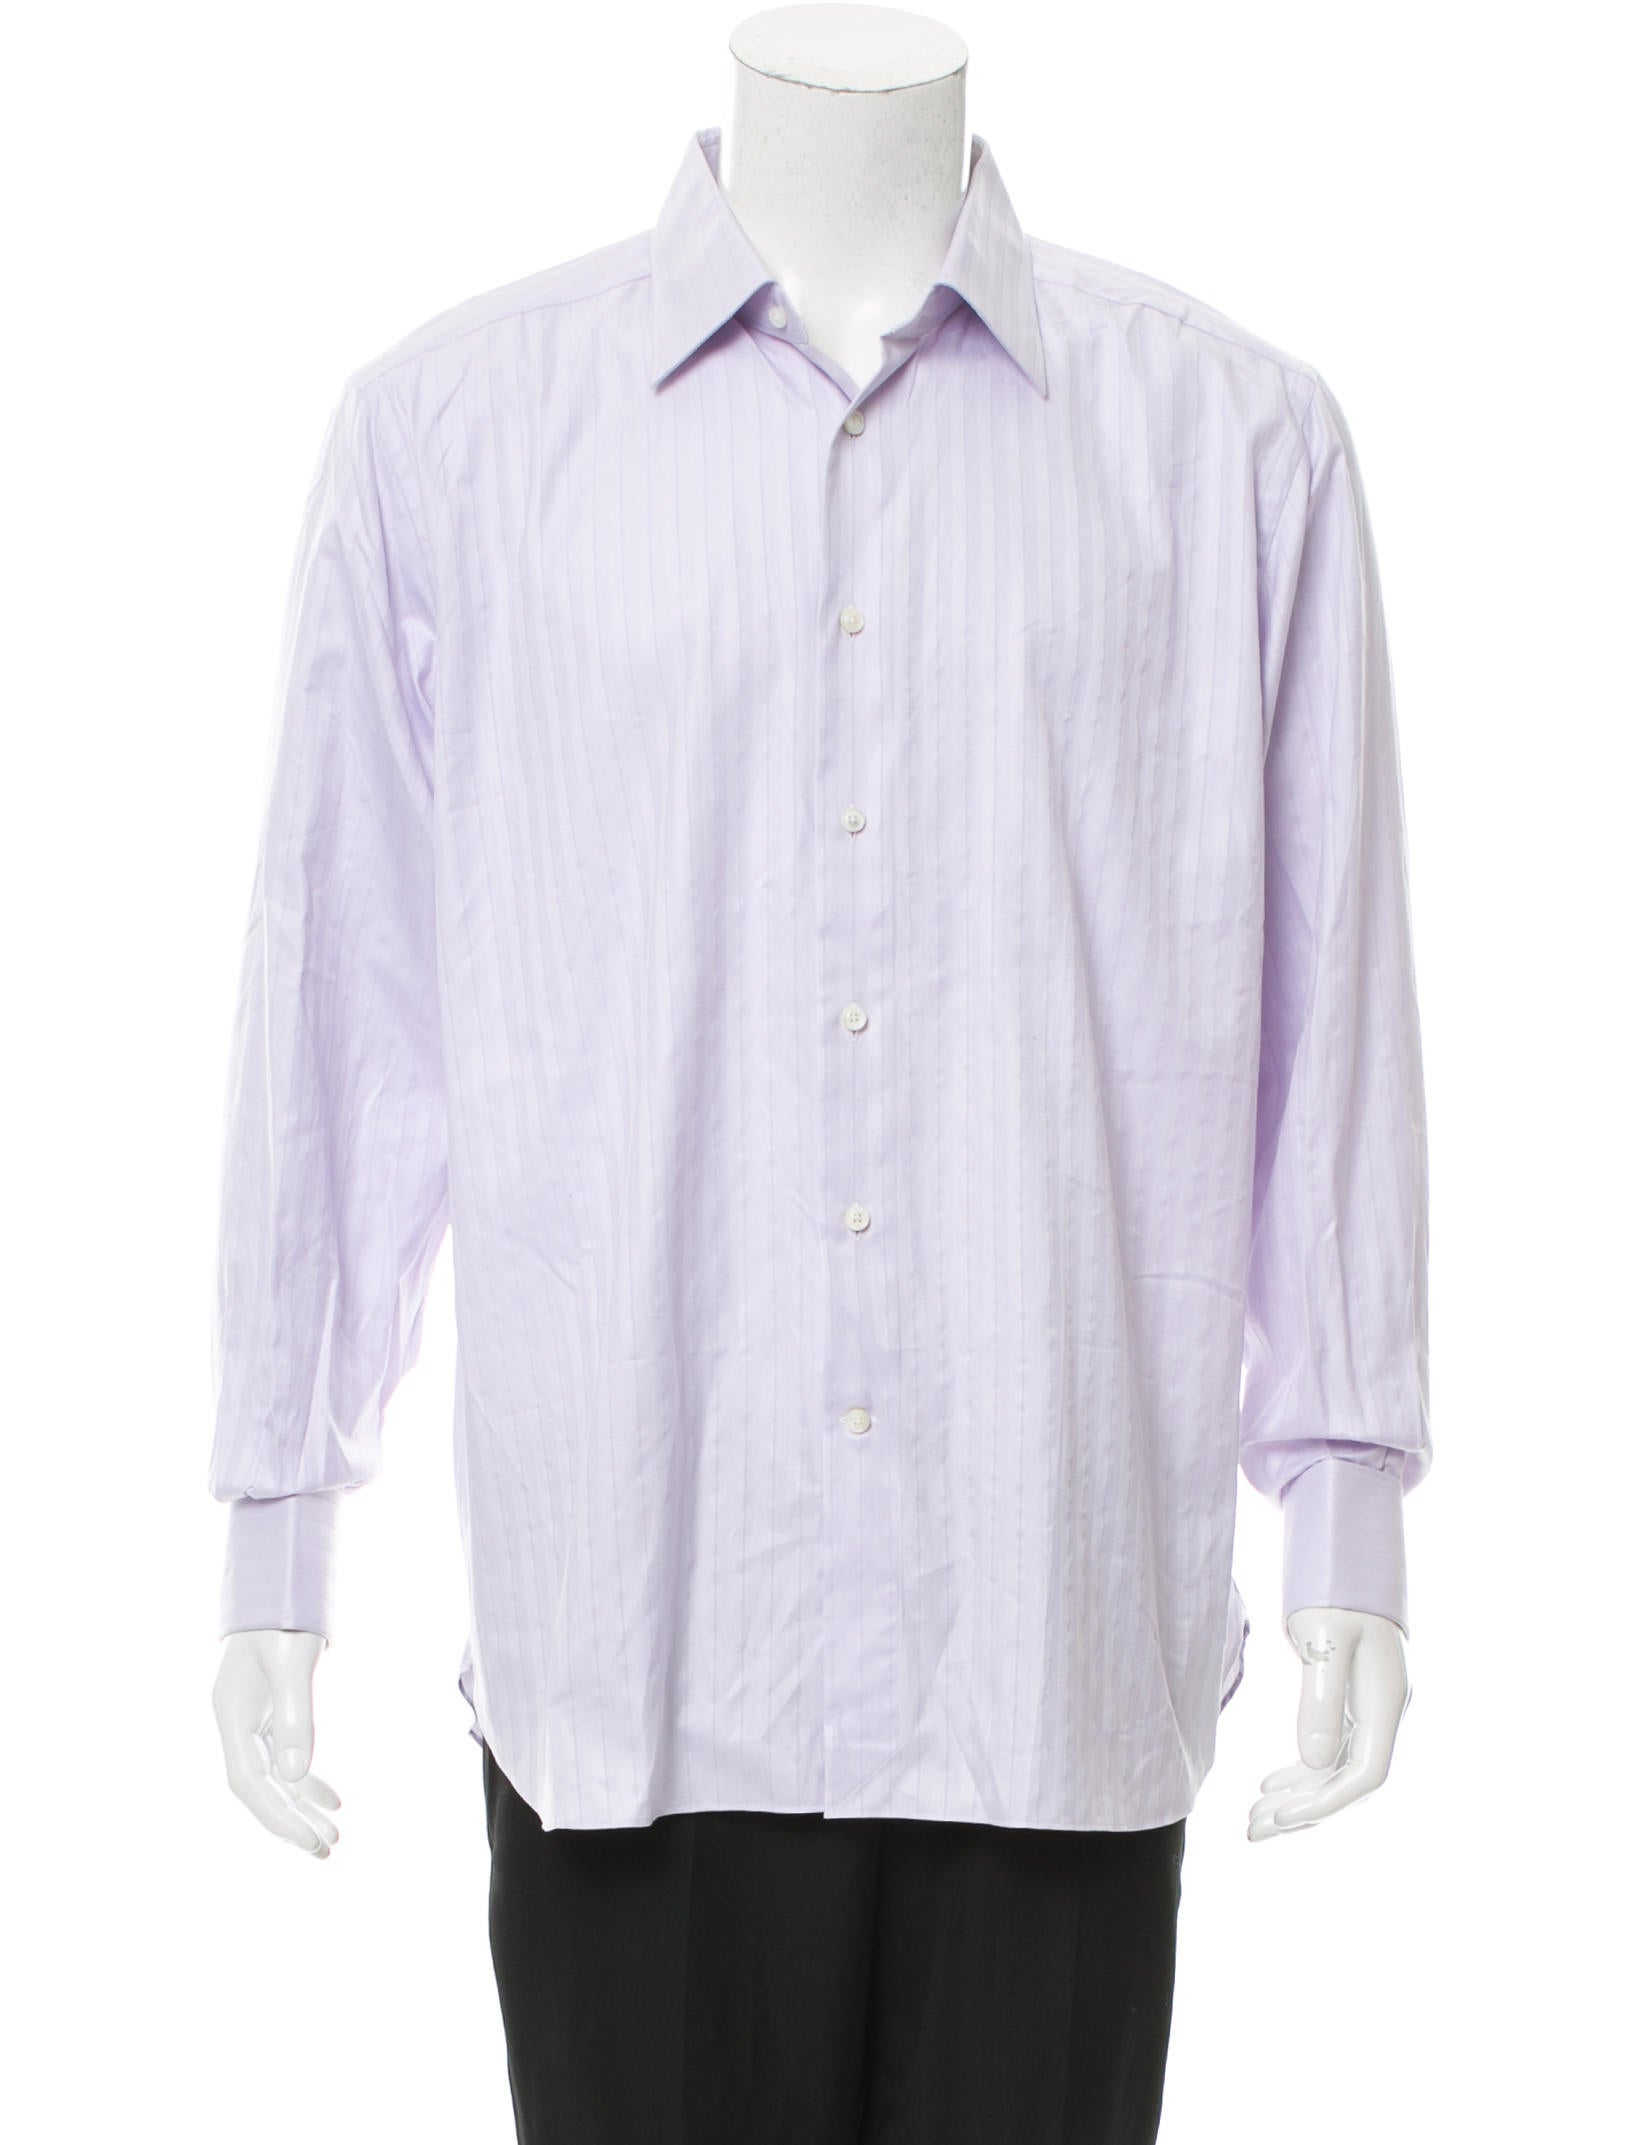 Ermenegildo zegna french cuff button up shirt clothing for French cuff dress shirts for sale